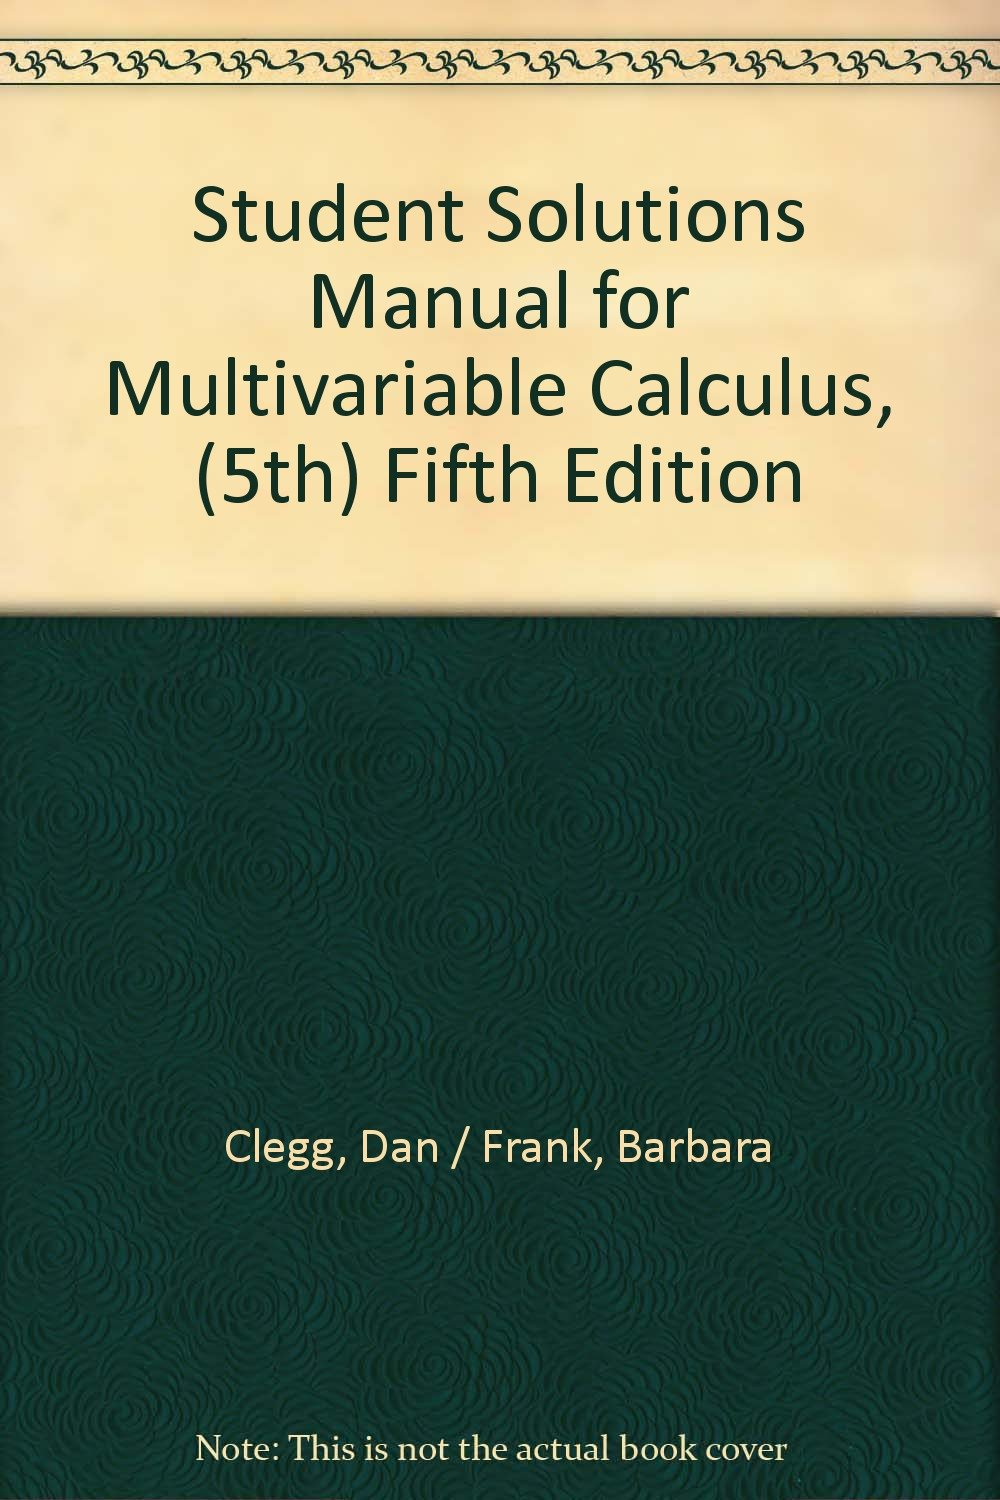 Student Solutions Manual for Multivariable Calculus, (5th) Fifth Edition:  Dan / Frank, Barbara Clegg: Amazon.com: Books